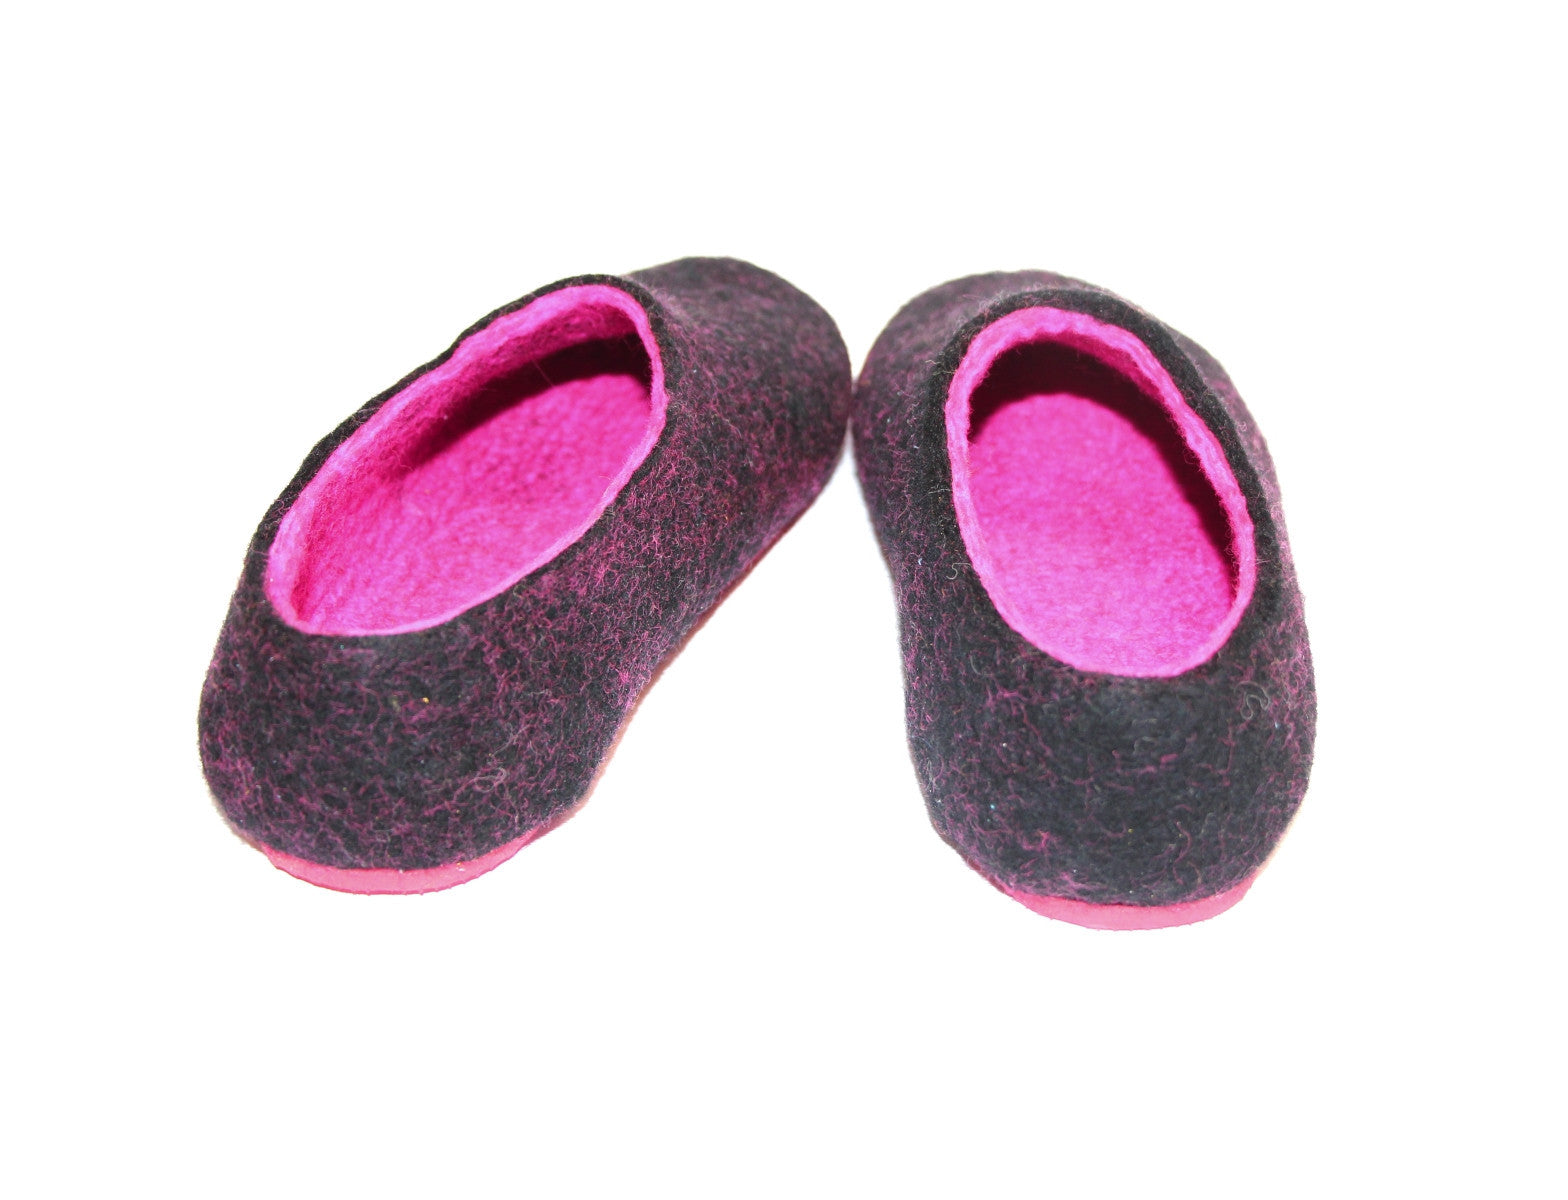 Womens Felt Slippers Black Fuchsia Contrast Sole - Wool Walker  - 2